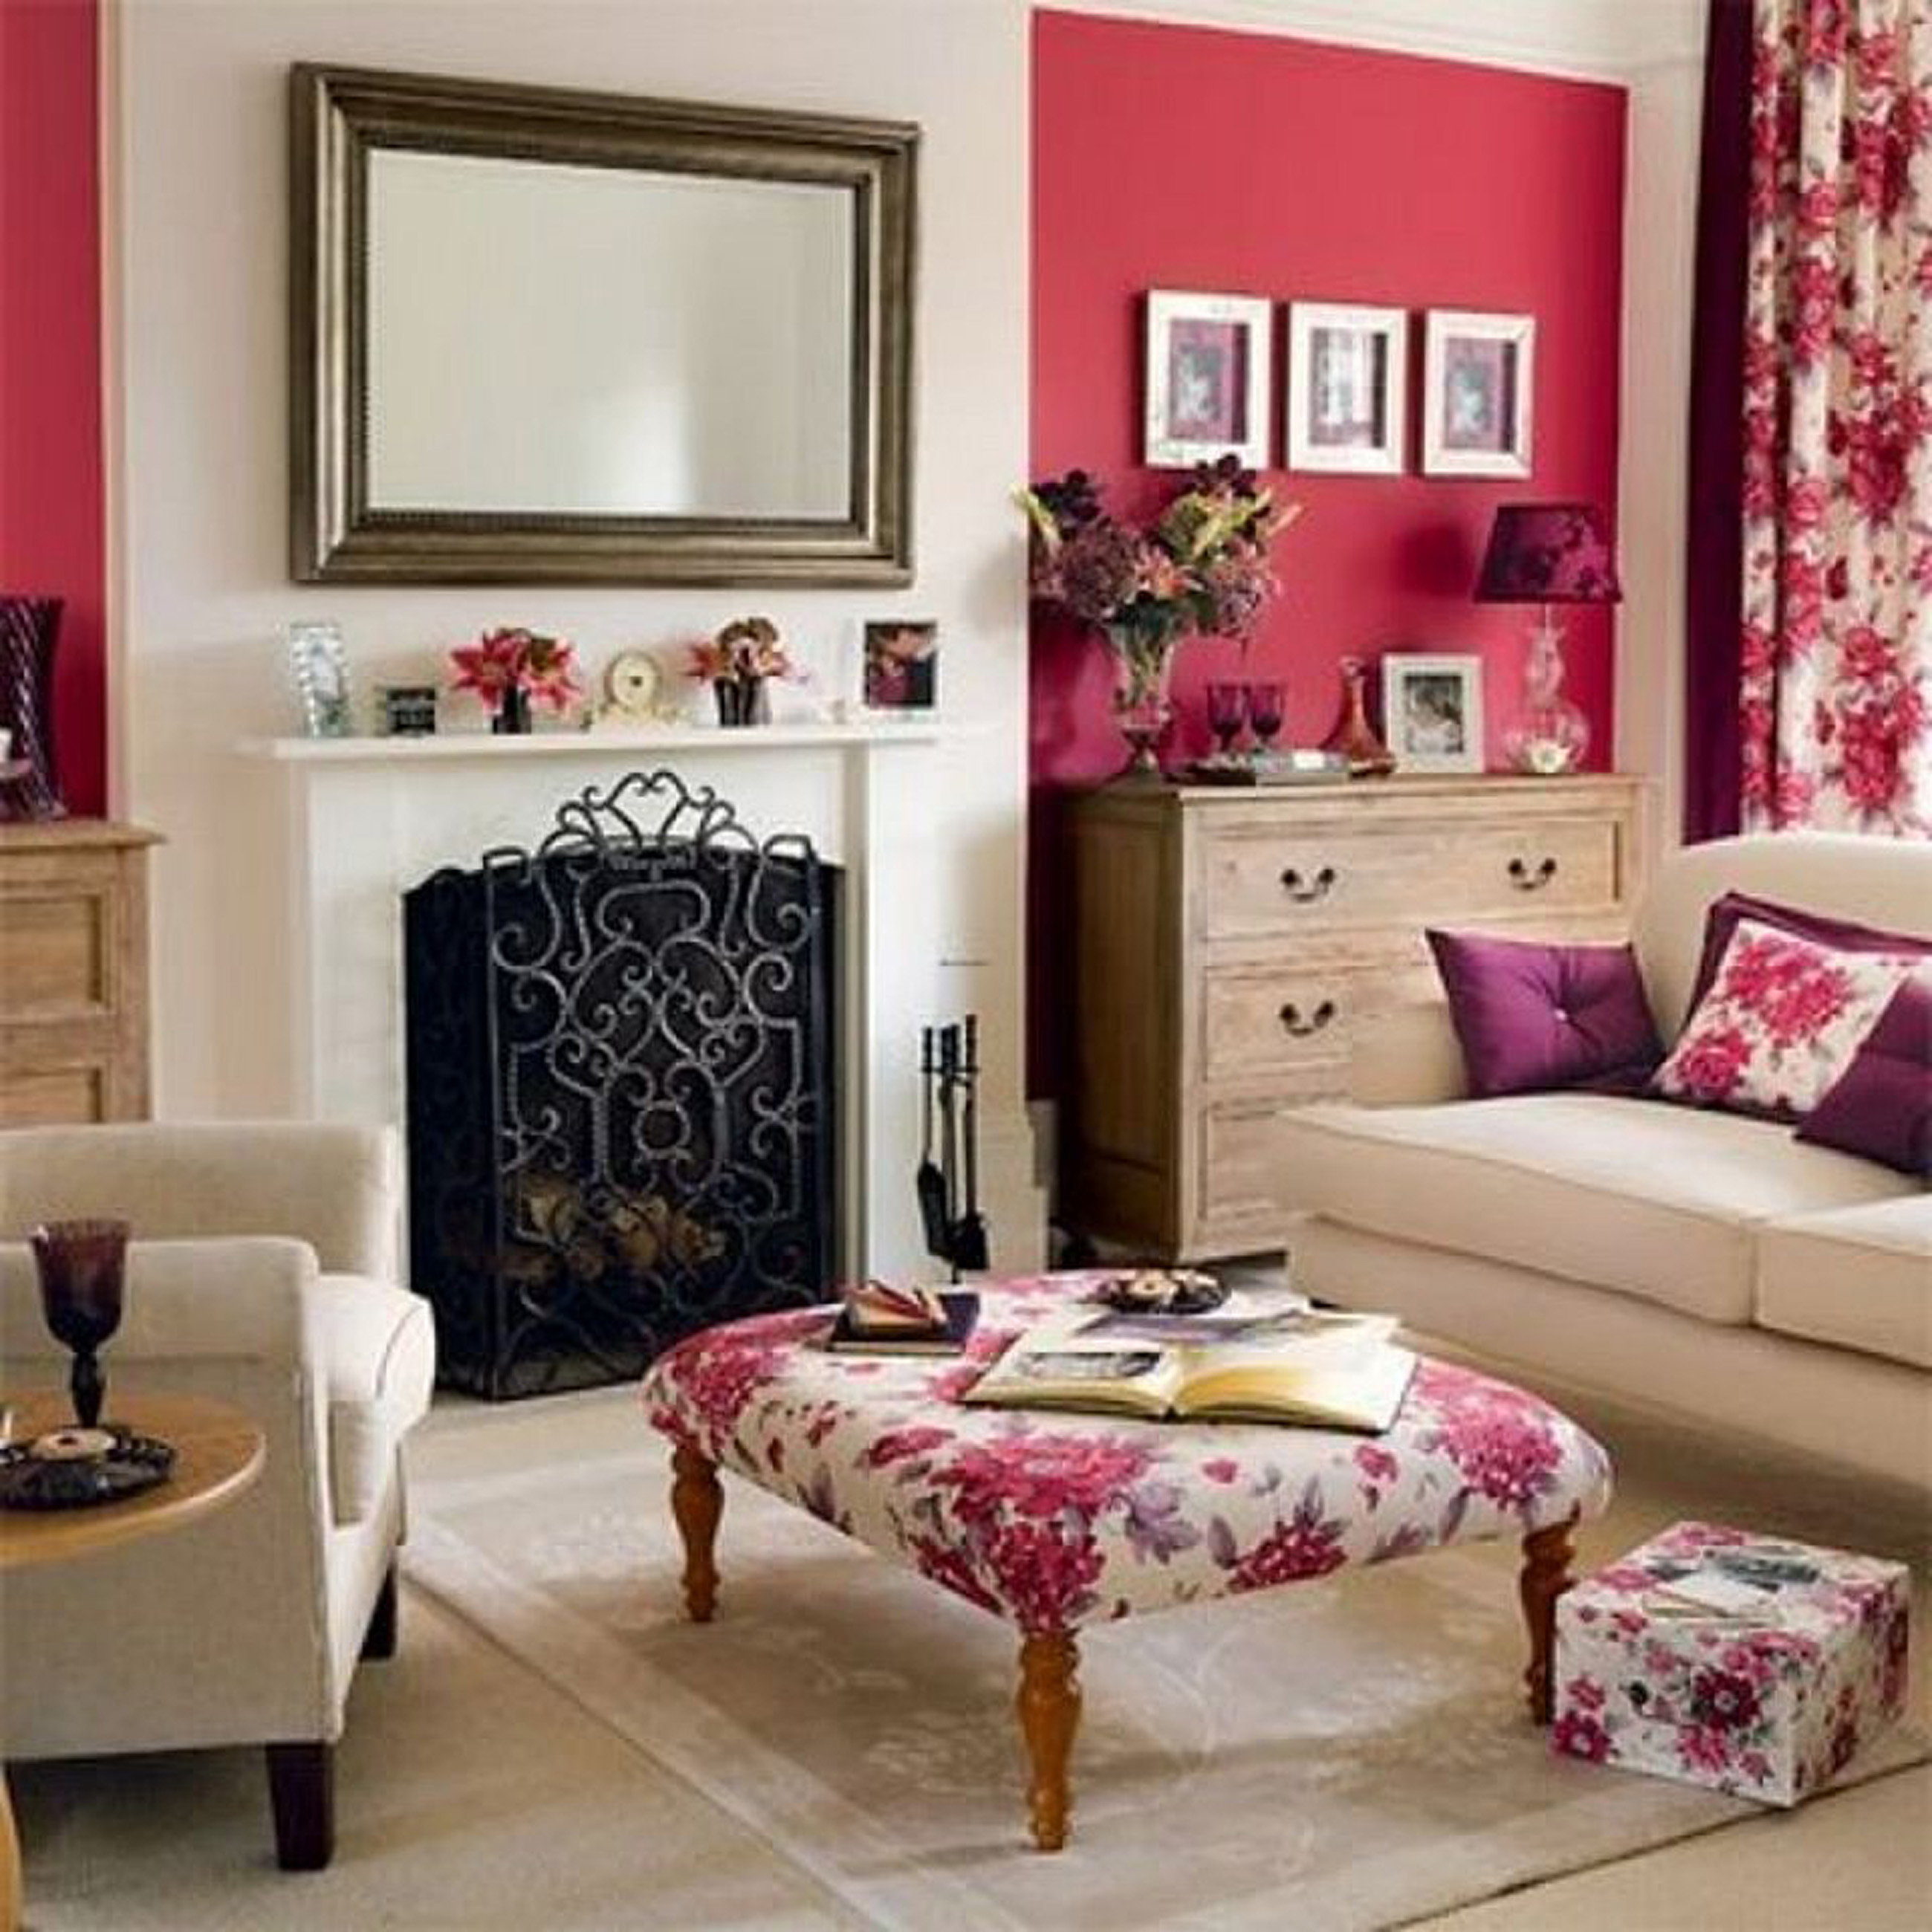 Apartments Decor Of Simple White Sofa Fireplace With Pink Wall (Image 34 of 45)